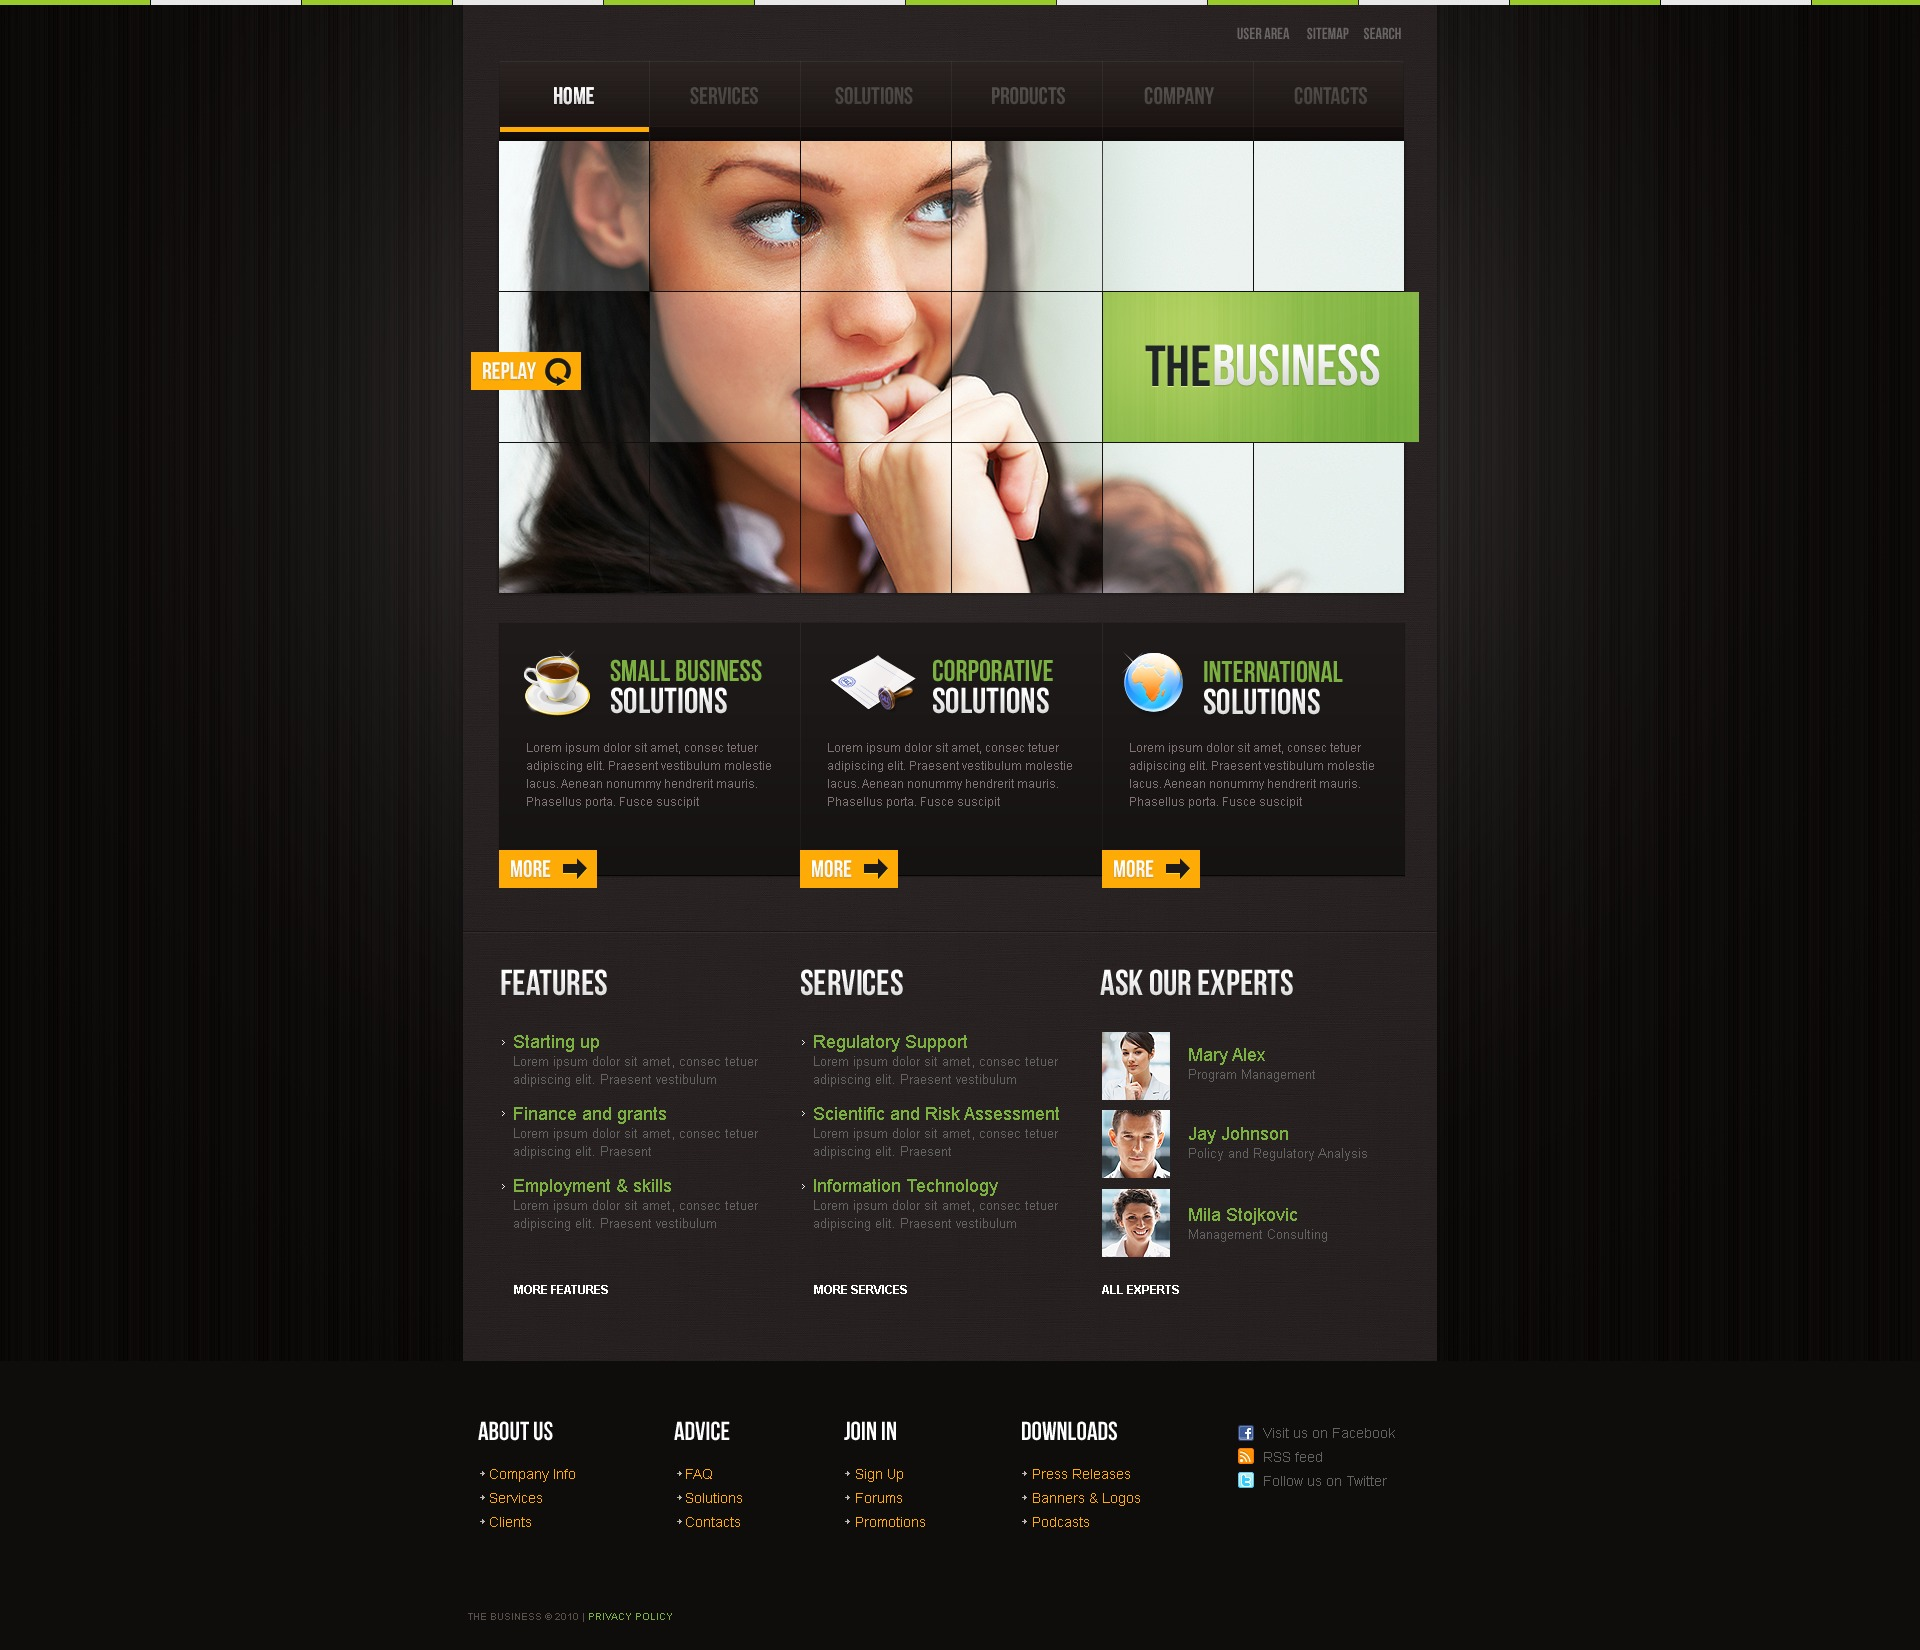 The The Business Company PSD Design 54510, one of the best PSD templates of its kind (business, flash 8, wide), also known as the business company PSD template, corporate solutions PSD template, innovations PSD template, contacts PSD template, service PSD template, support PSD template, information dealer PSD template, stocks PSD template, team PSD template, success PSD template, money PSD template, marketing PSD template, director PSD template, manager PSD template, analytics PSD template, planning PSD template, limited PSD template, office PSD template, sales and related with the business company, corporate solutions, innovations, contacts, service, support, information dealer, stocks, team, success, money, marketing, director, manager, analytics, planning, limited, office, sales, etc.